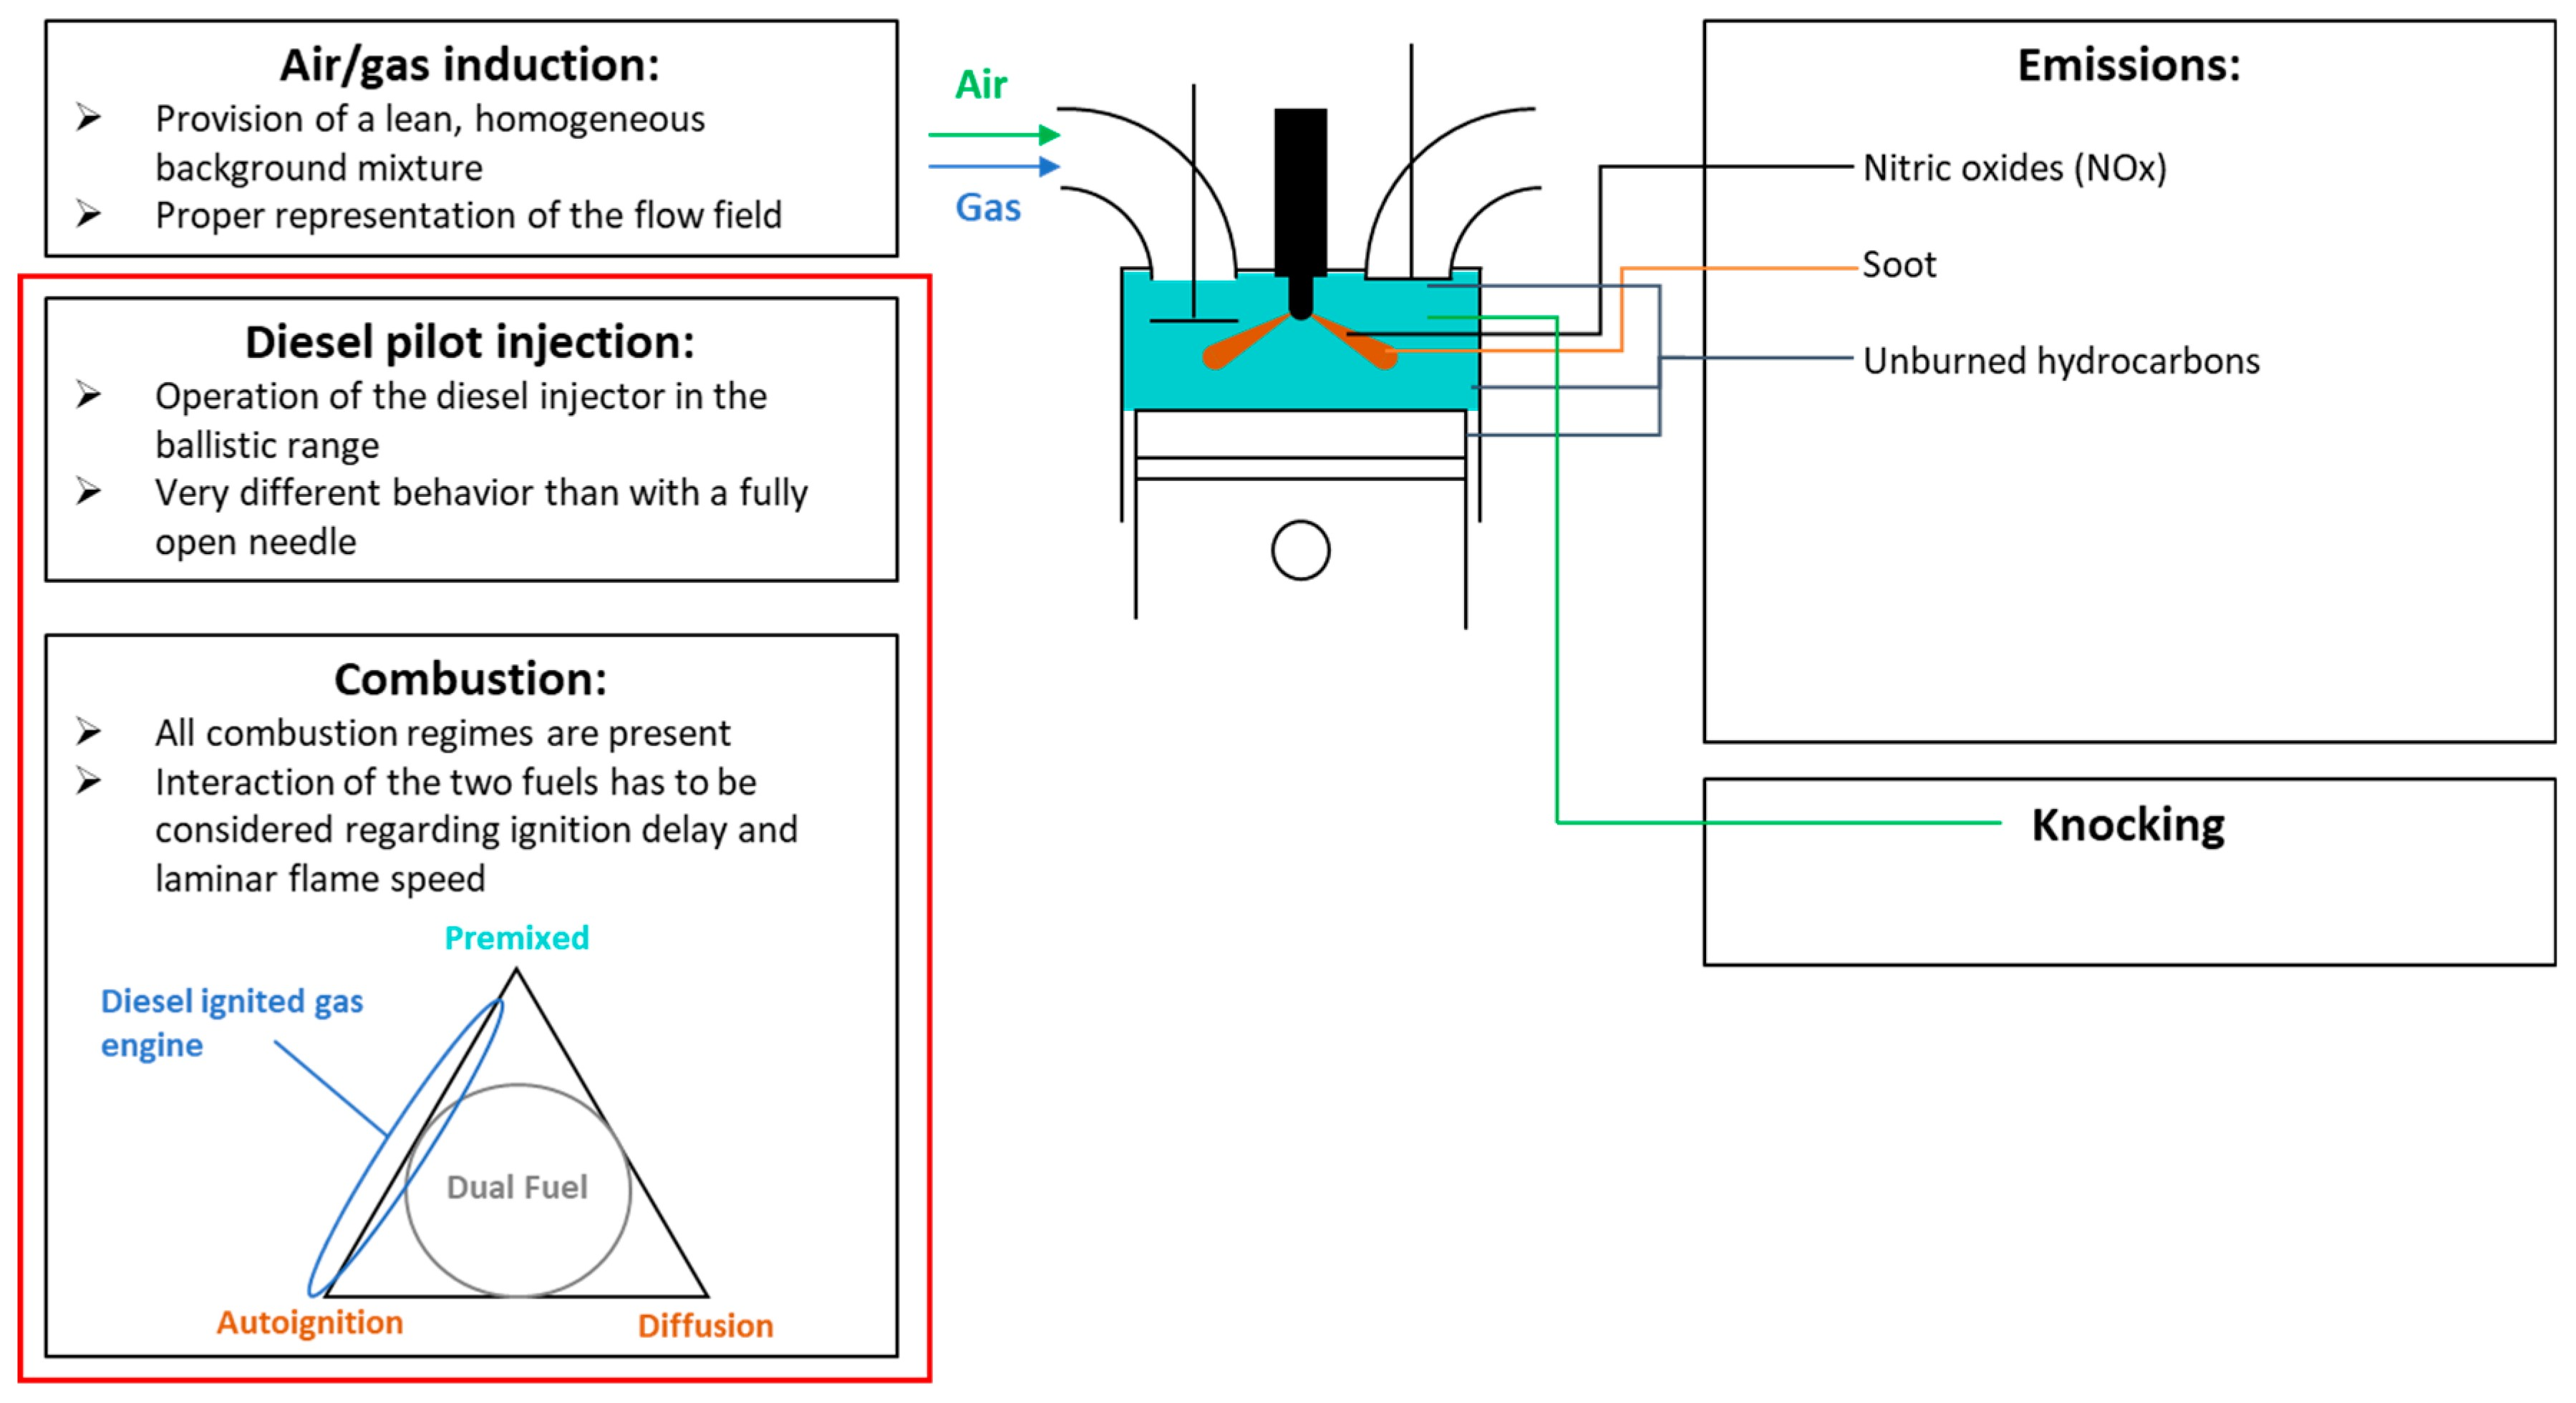 Simple Diesel Engine Diagram Energies Free Full Text Of Simple Diesel Engine Diagram Pin by Jimmiejanet Testellamwfz On What Does An Engine with Turbo